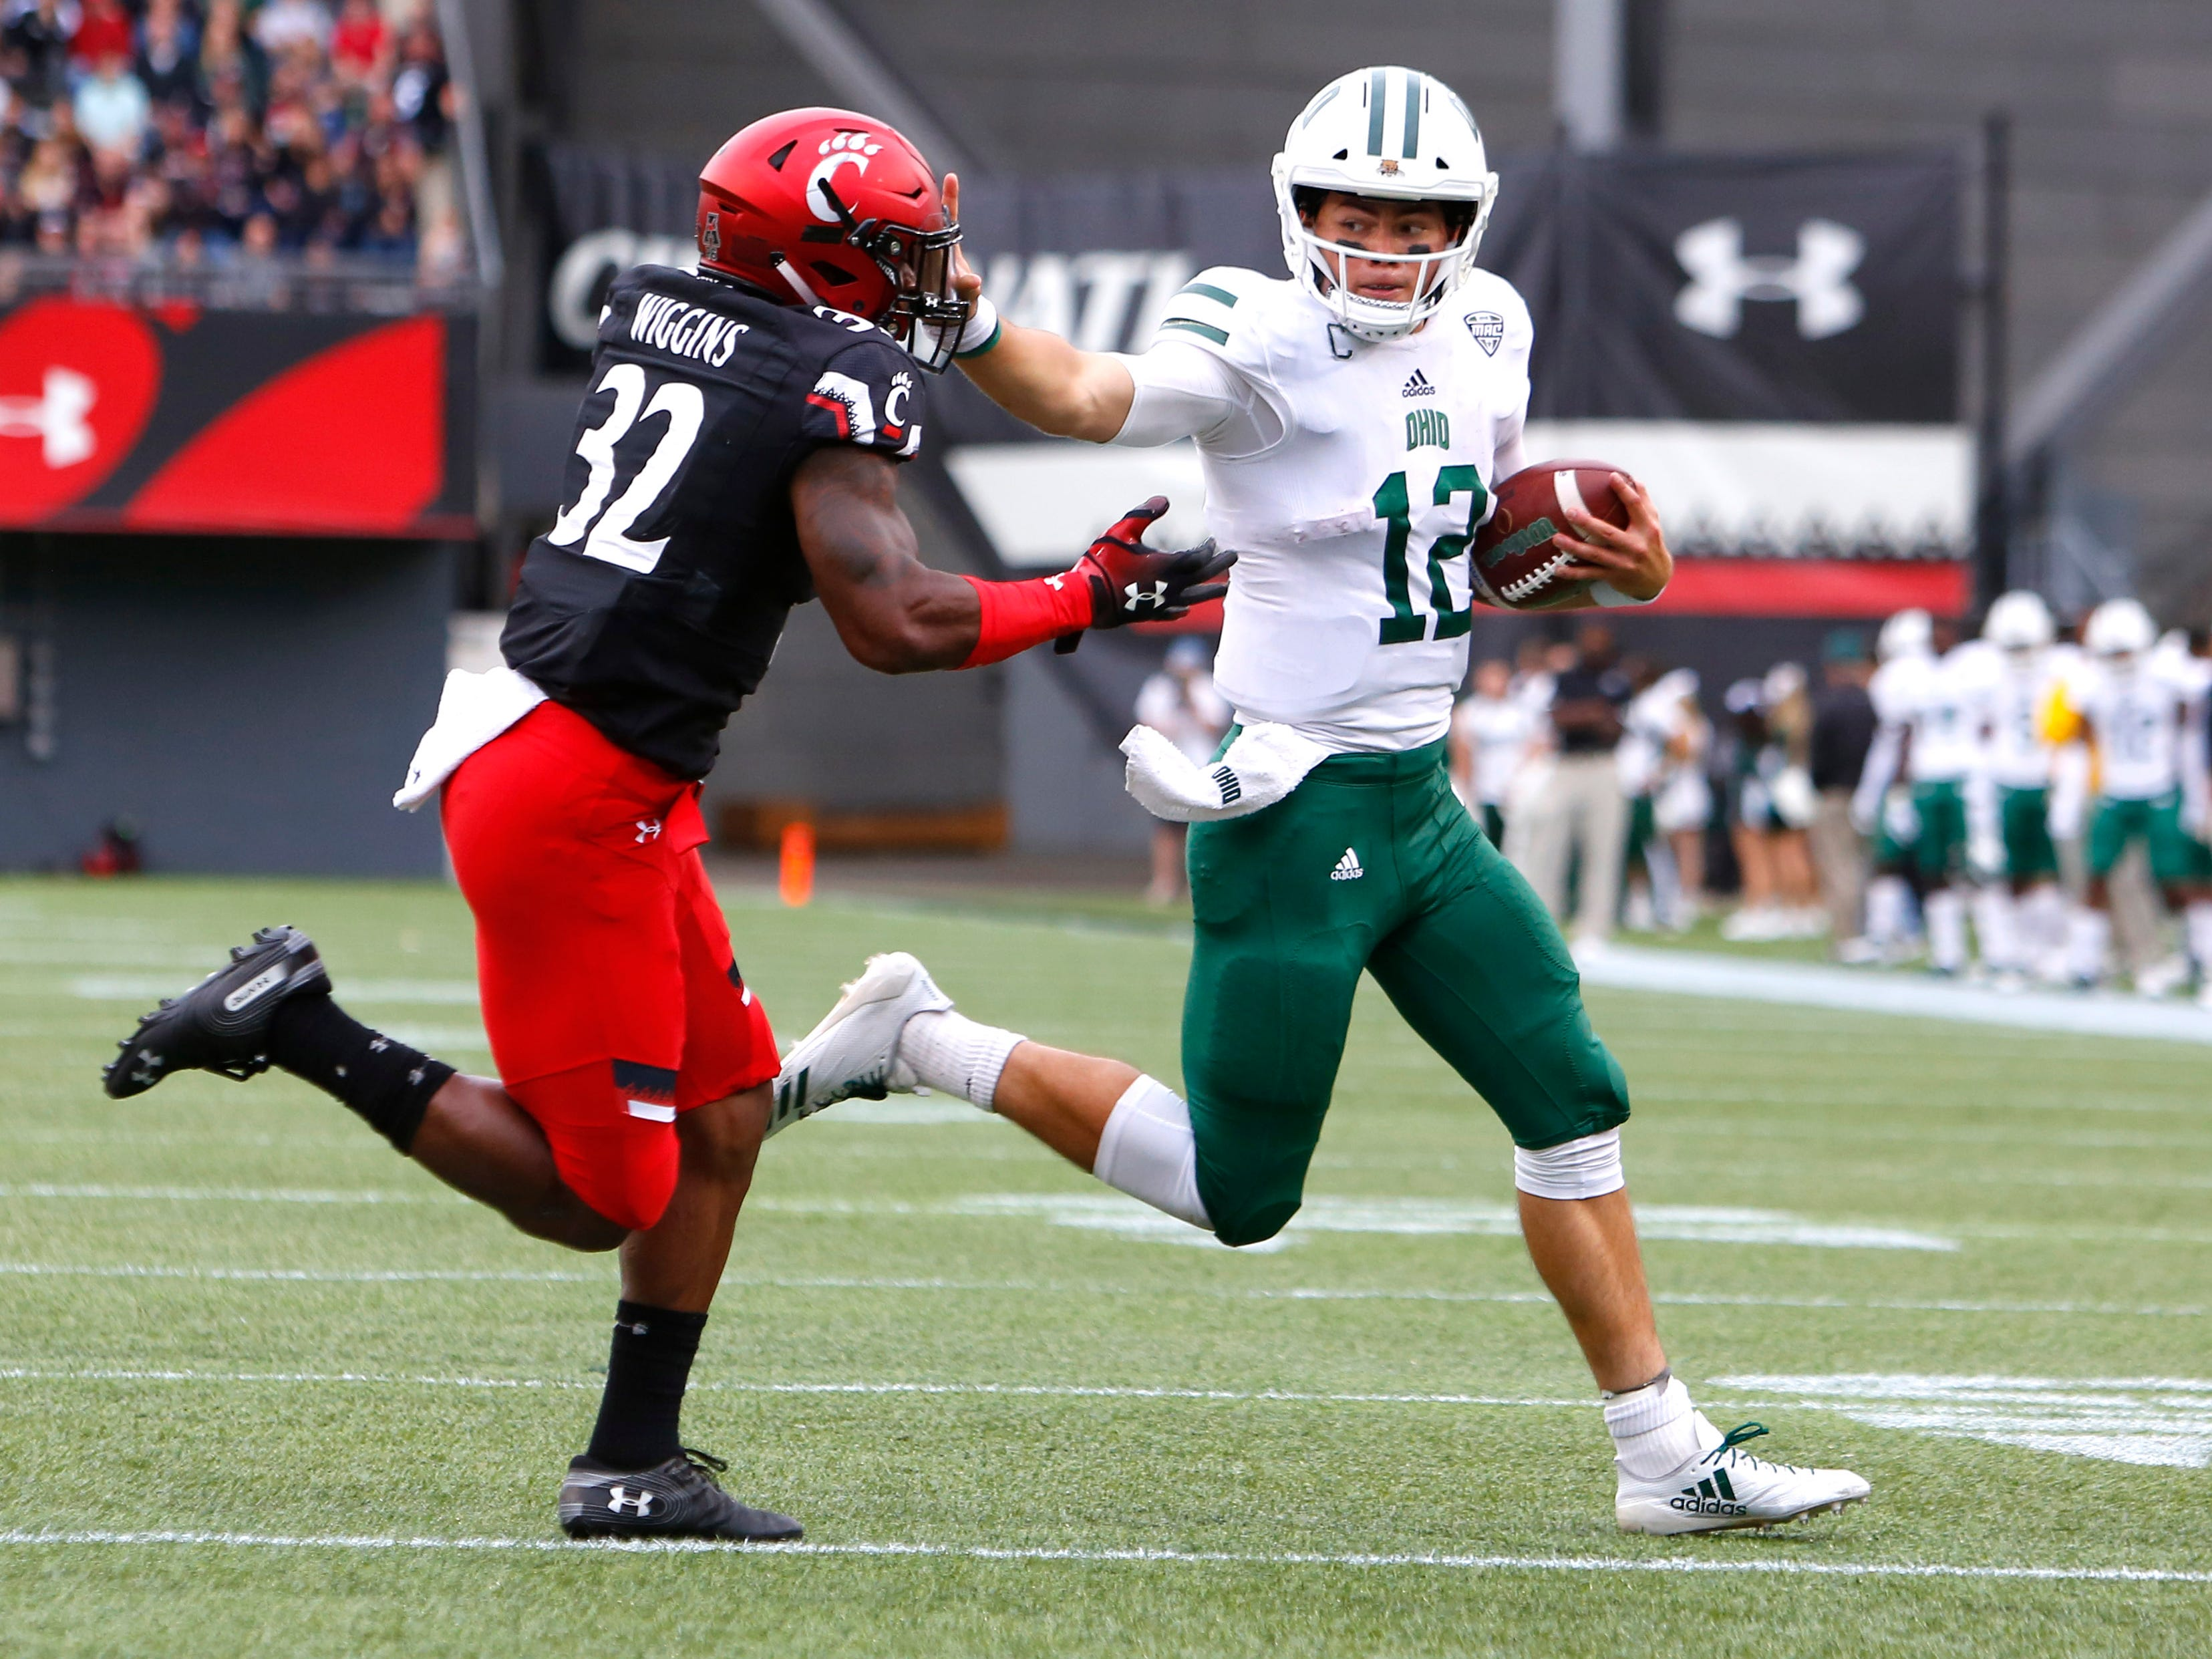 Sep 22, 2018; Cincinnati, OH, USA; Ohio Bobcats quarterback Nathan Rourke (12) runs against Cincinnati Bearcats safety James Wiggins (32) during the first half at Nippert Stadium. Mandatory Credit: David Kohl-USA TODAY Sports